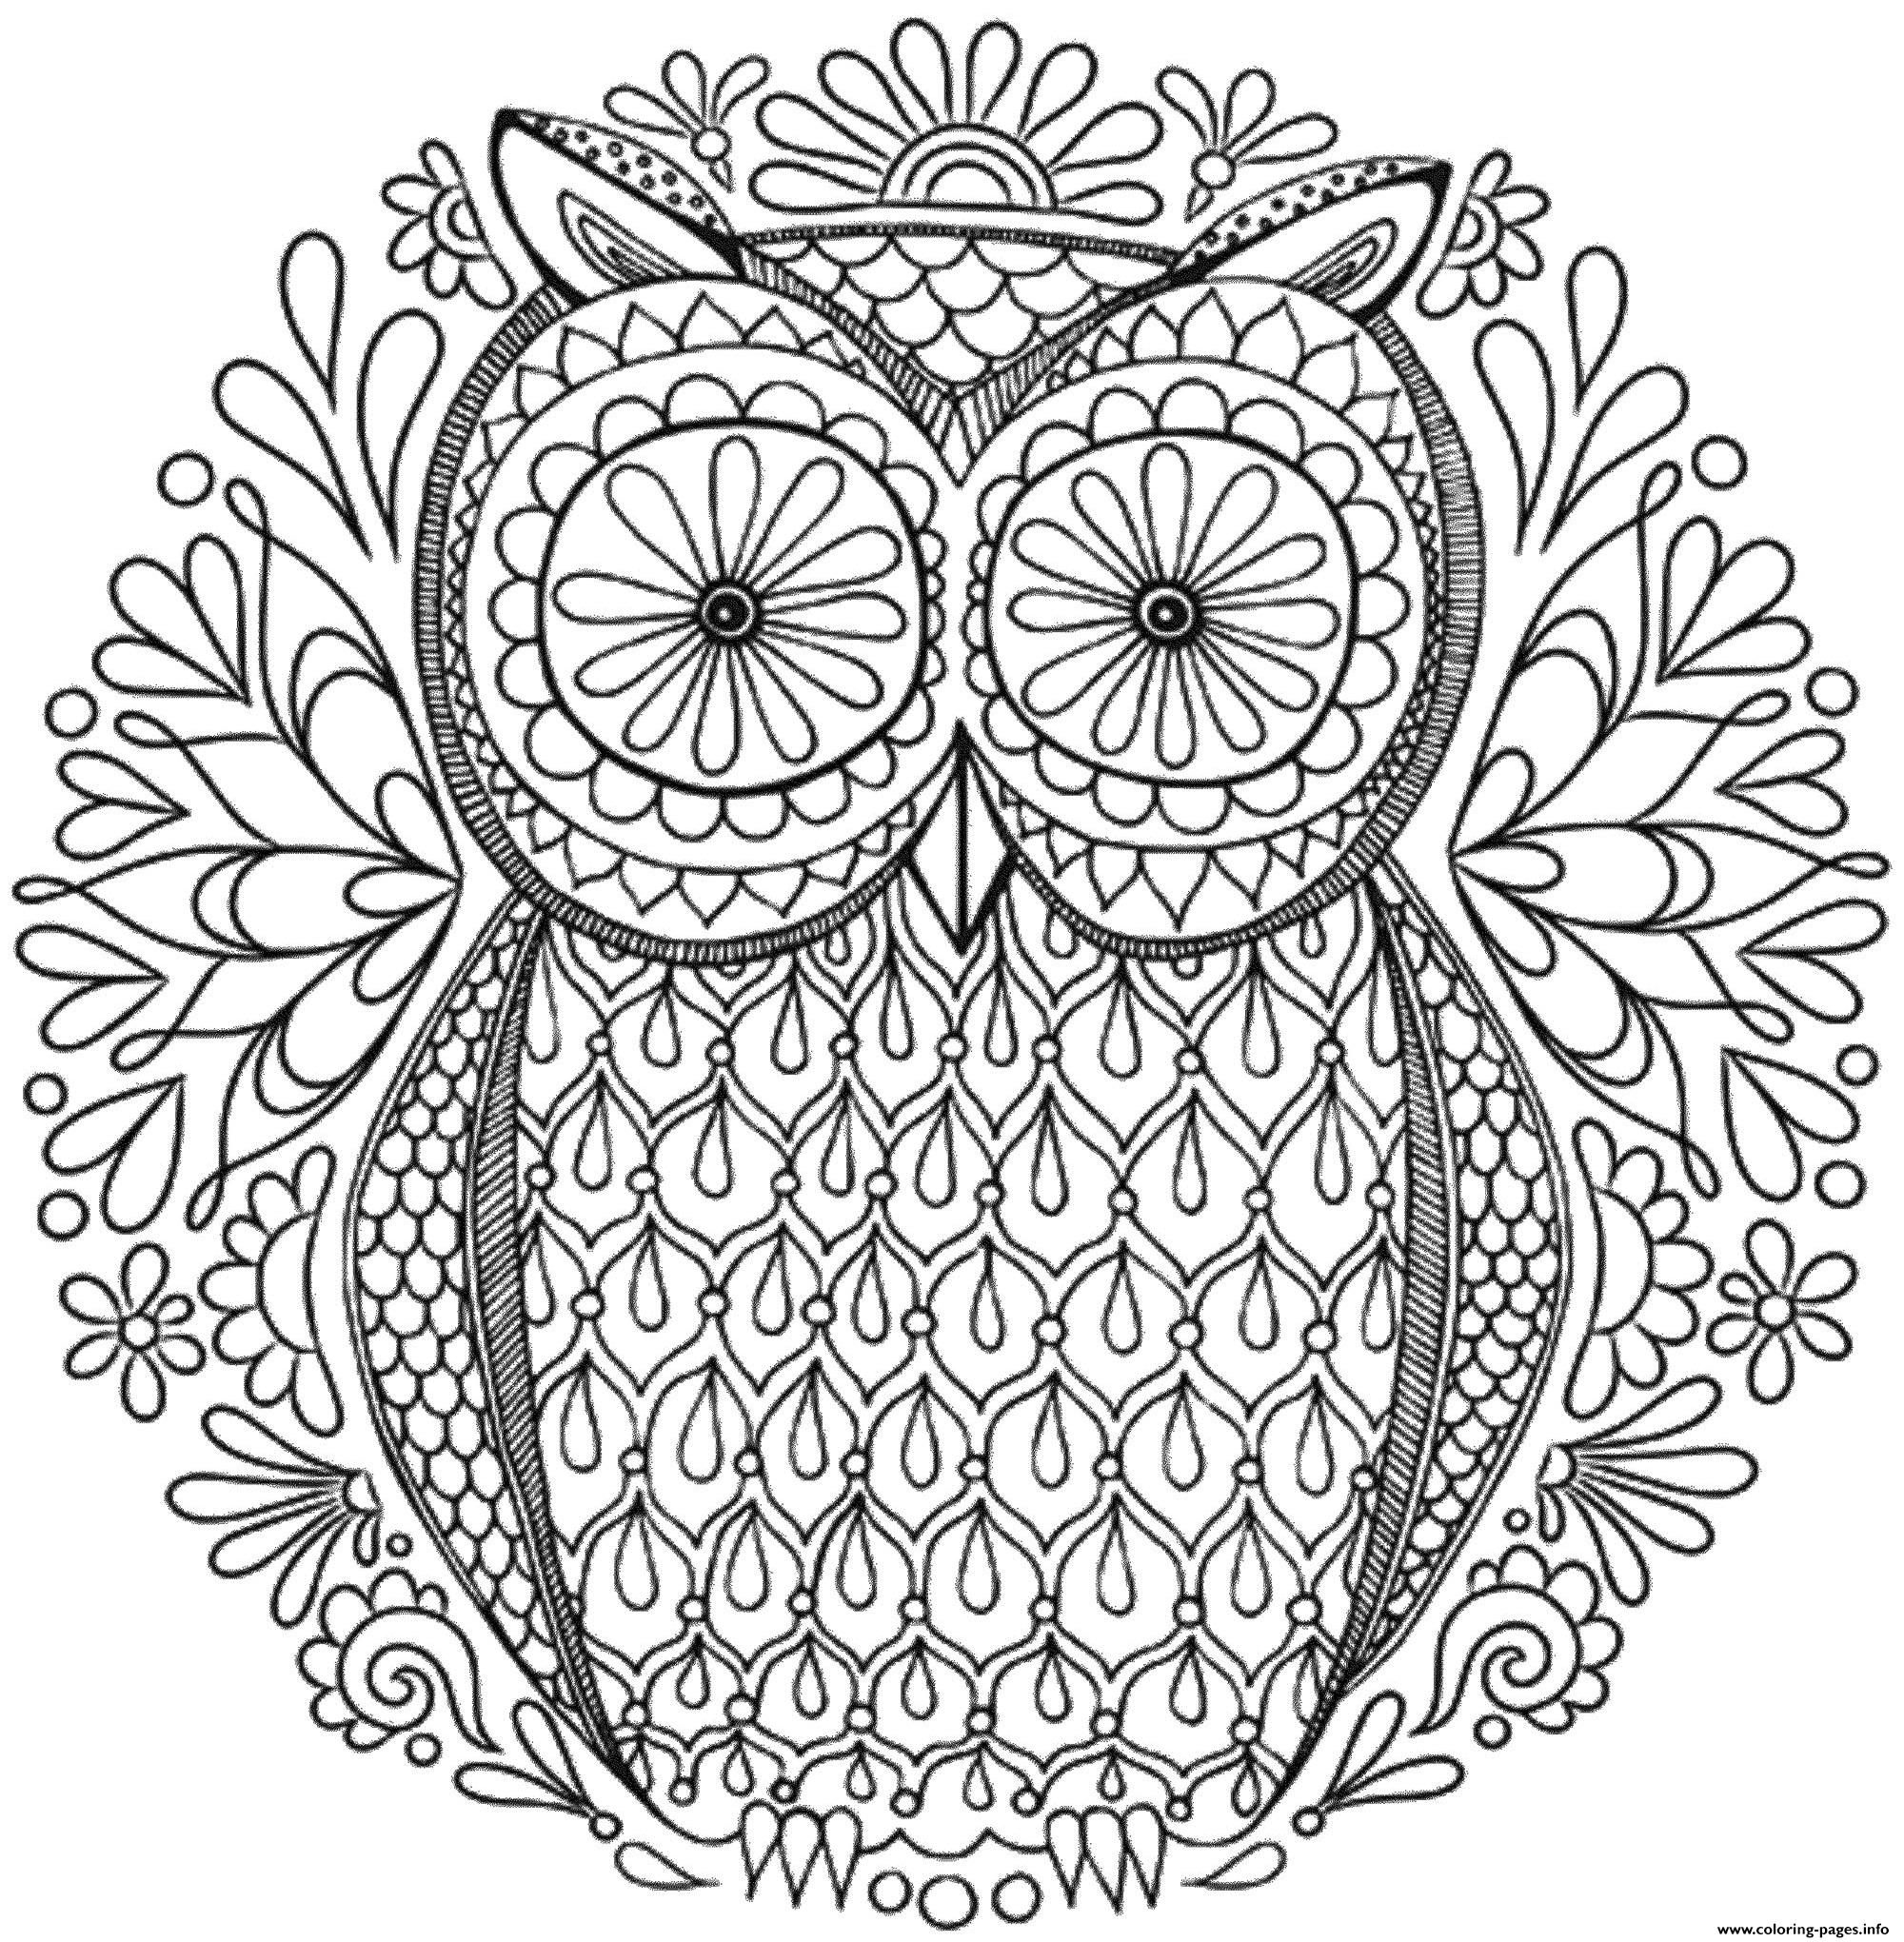 Mandala To Download Magical Owl coloring pages